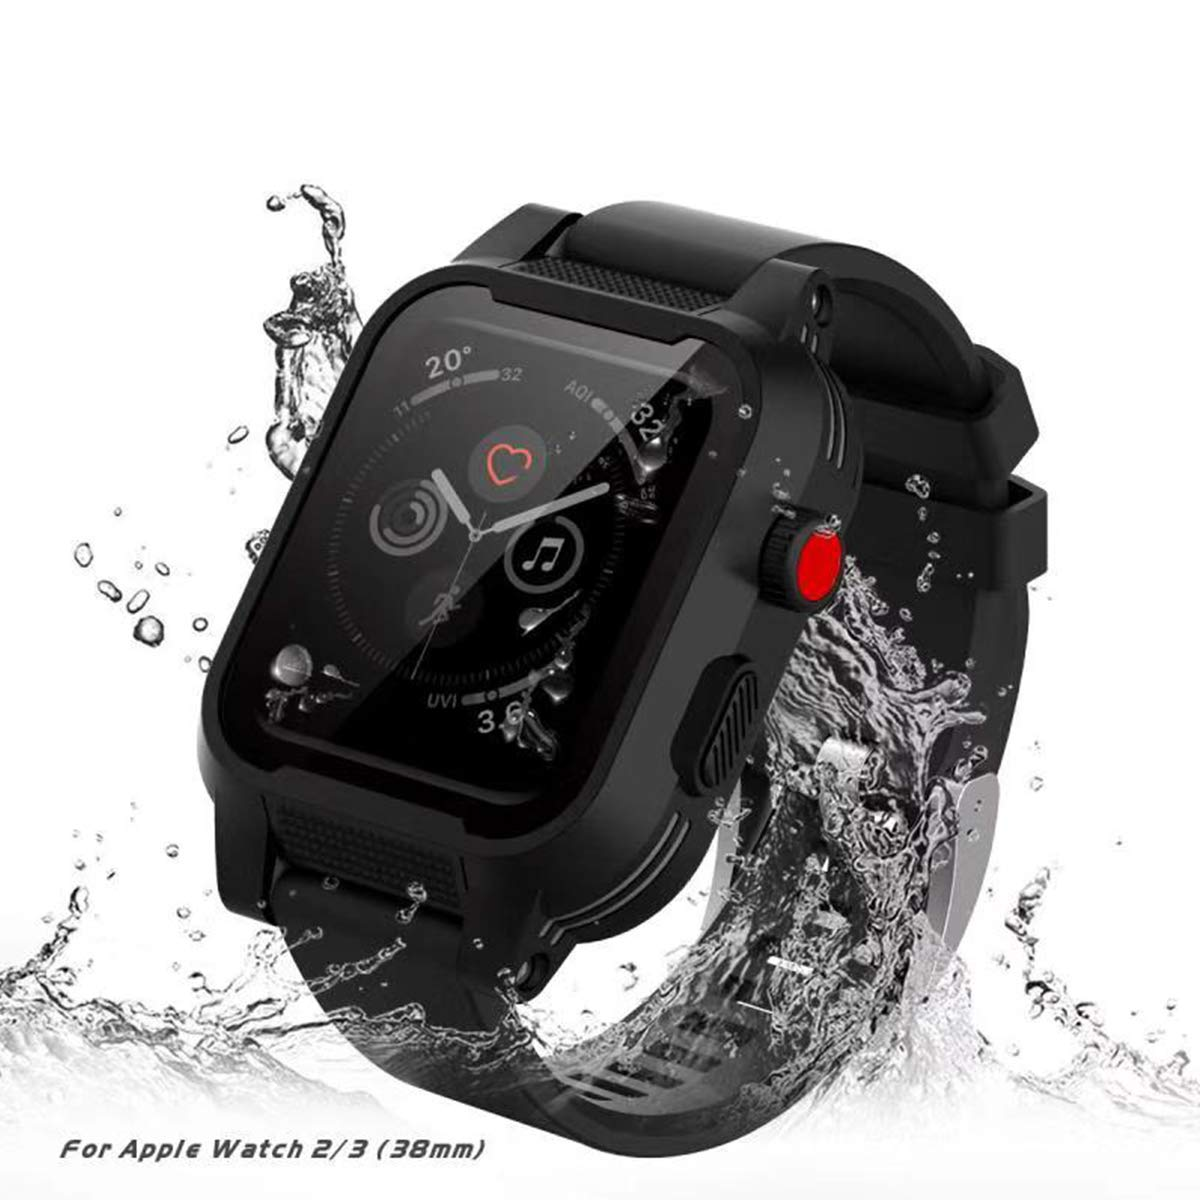 [Waterproof Case for 38mm] AIUERU Waterproof Watch Case with IP68 and Resilient Shock Absorption for 38mm Apple Watch Series 3 and 2 / with 2 Soft Silicone Watch Band - Black